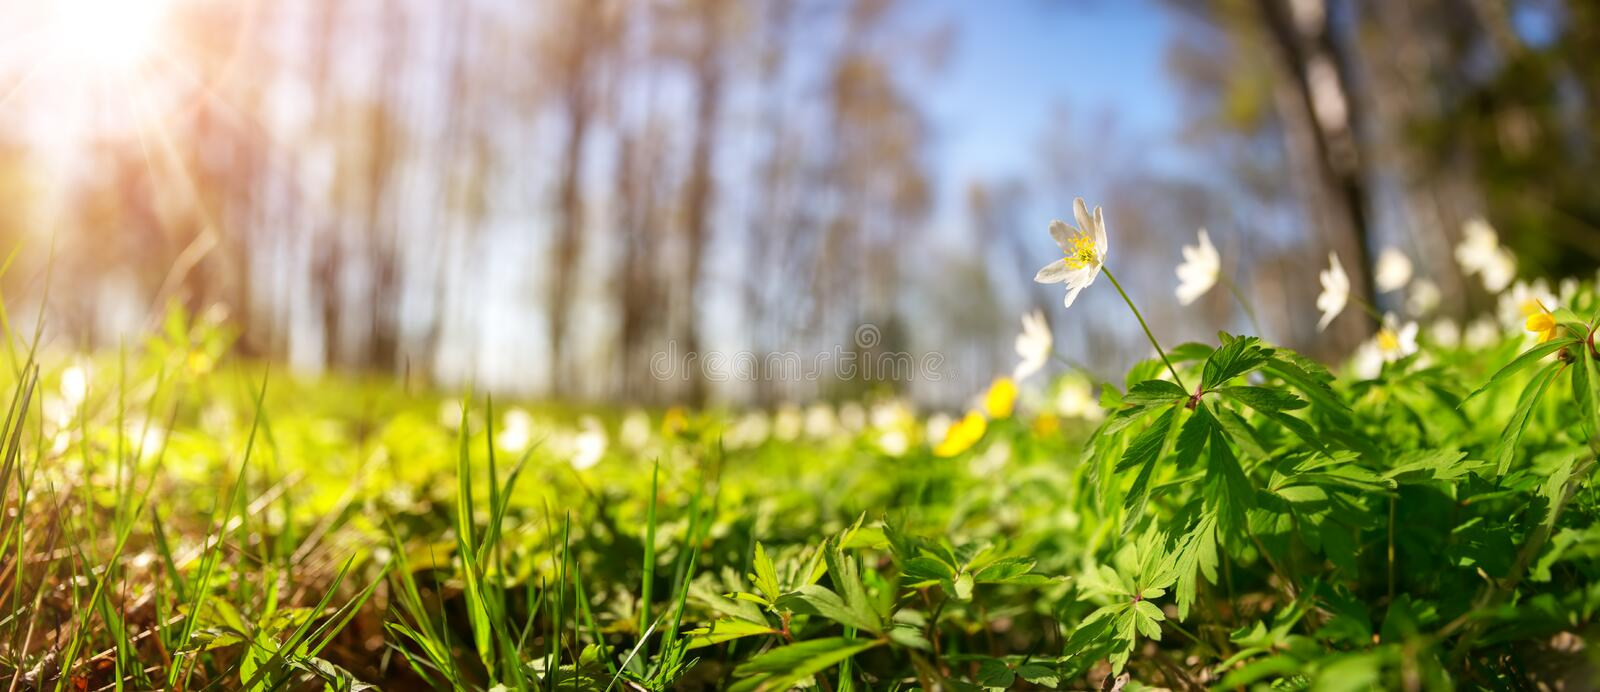 Wood with lots of white spring flowers in sunny day royalty free stock photo